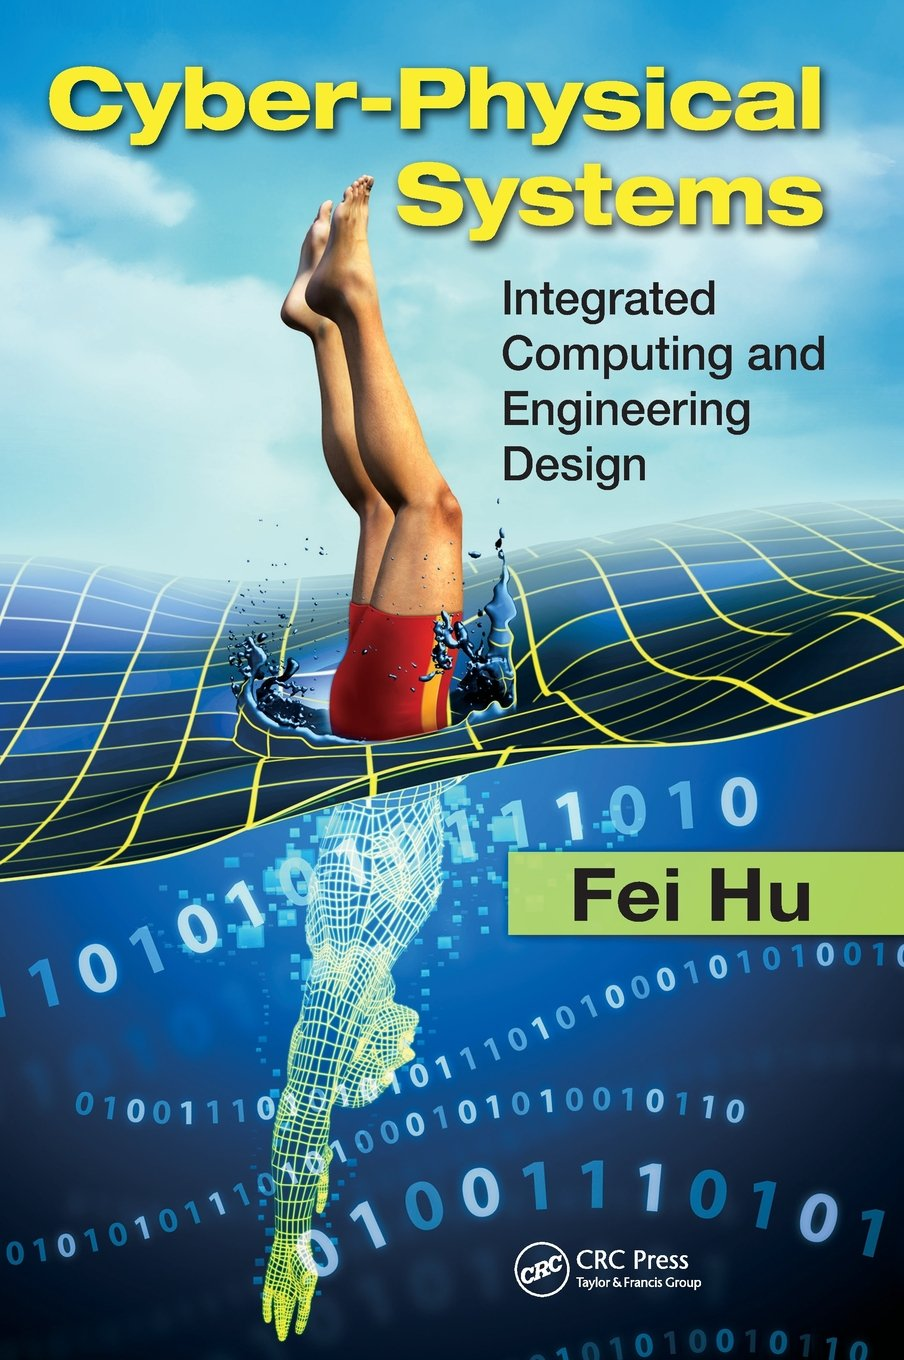 Cyber-Physical Systems: Integrated Computing and Engineering Design by CRC Press